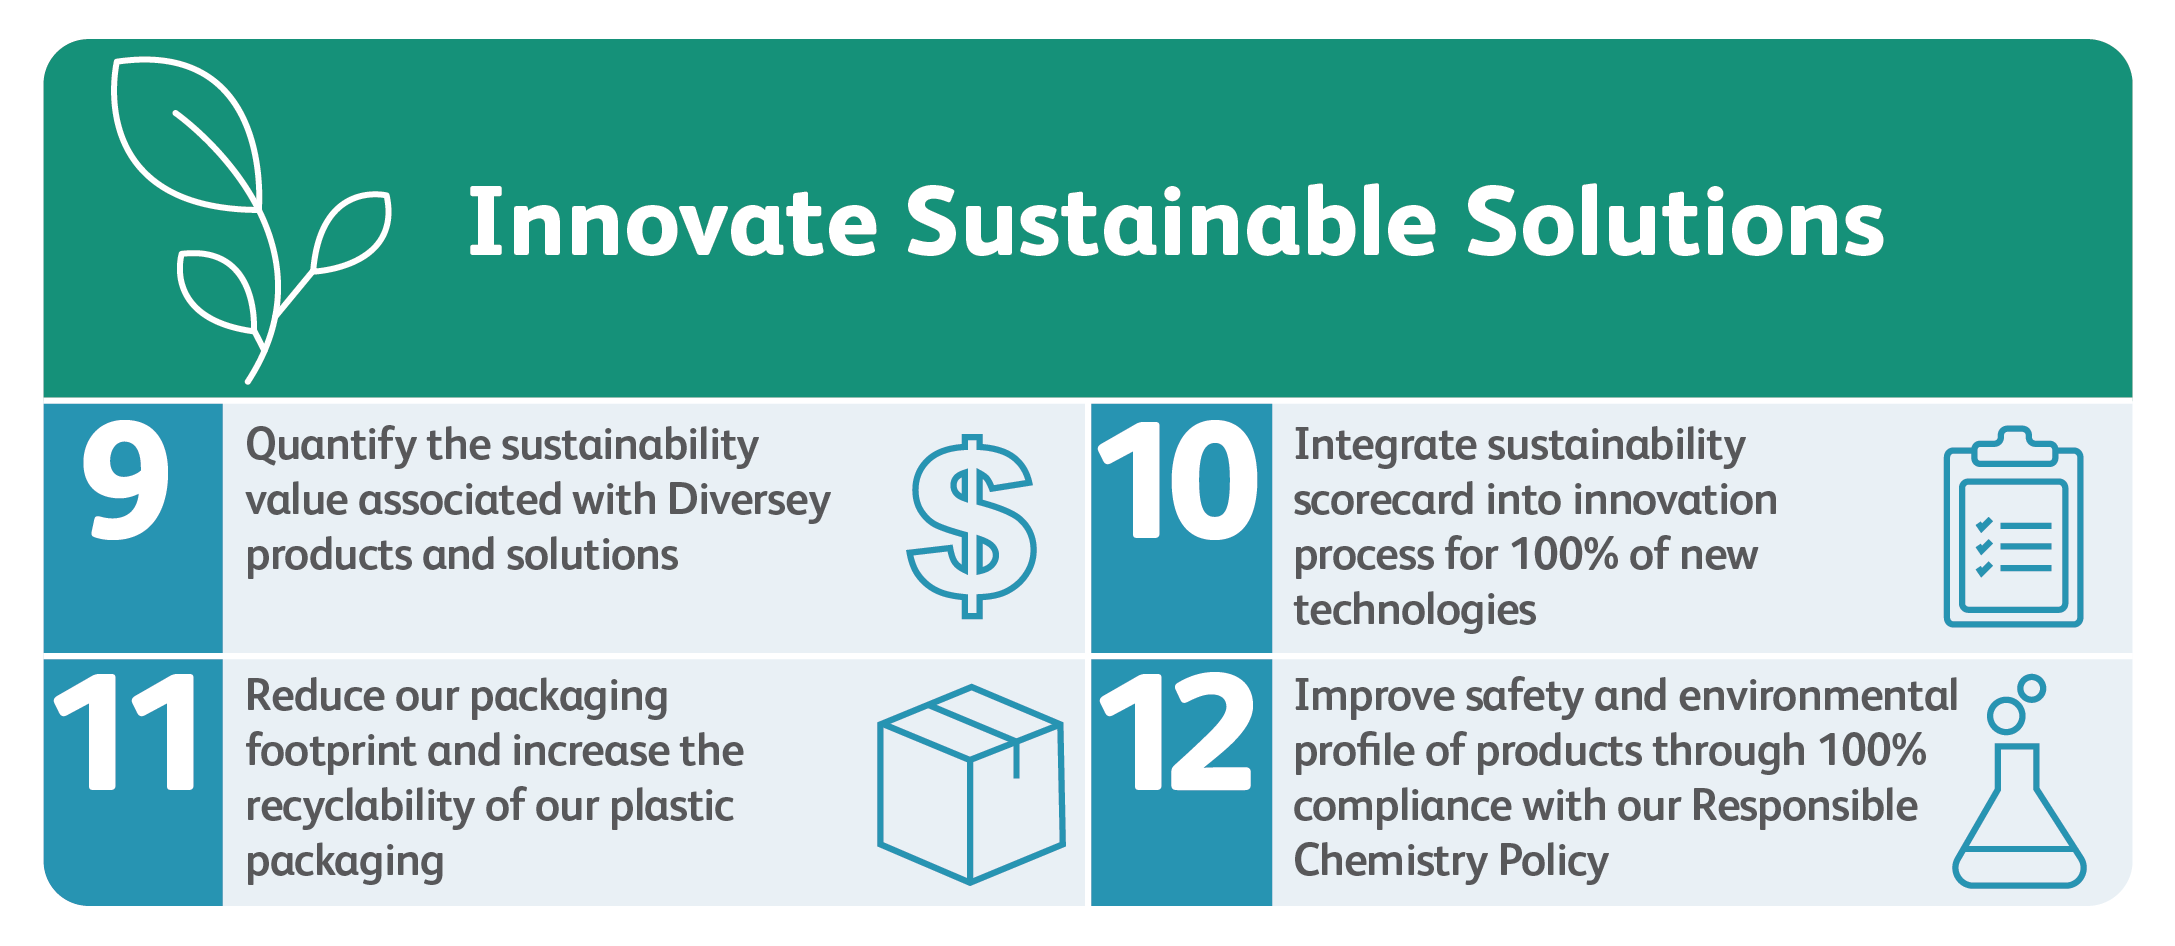 By Delivering Innovative Sustainable Solutions to the market. Nine Quantify the sustainability value associated with Diversey products and solutions. Ten Integrate sustainability scorecard into innovation process for 100% of new technologies. Eleven Reduce our packaging footprint and increase the recyclability of our plastic packaging and Twelve Improve safety and environmental profile of products through 100% compliance with our Responsible Chemistry Policy.